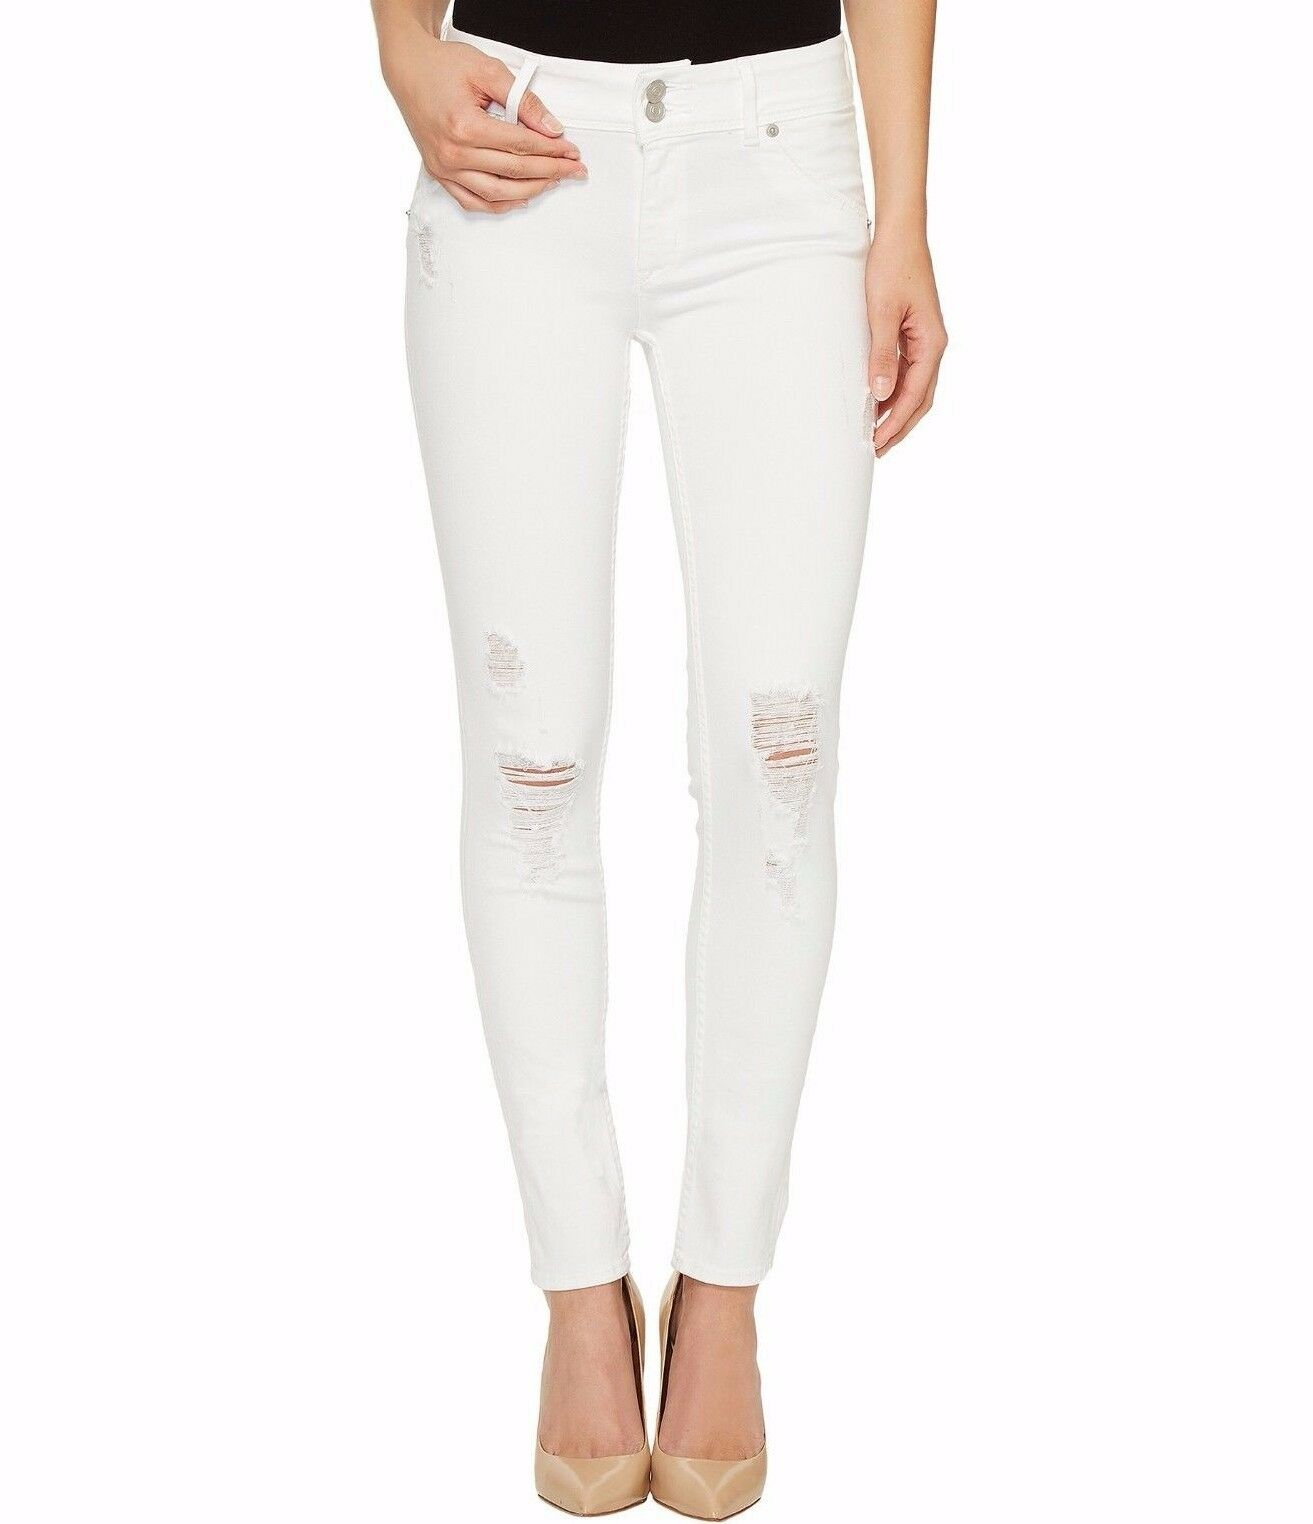 NWT HUDSON Sz30 COLLIN MIDRISE SKINNY STRETCH JEANS DEMOLISH WHITE DISTRESS